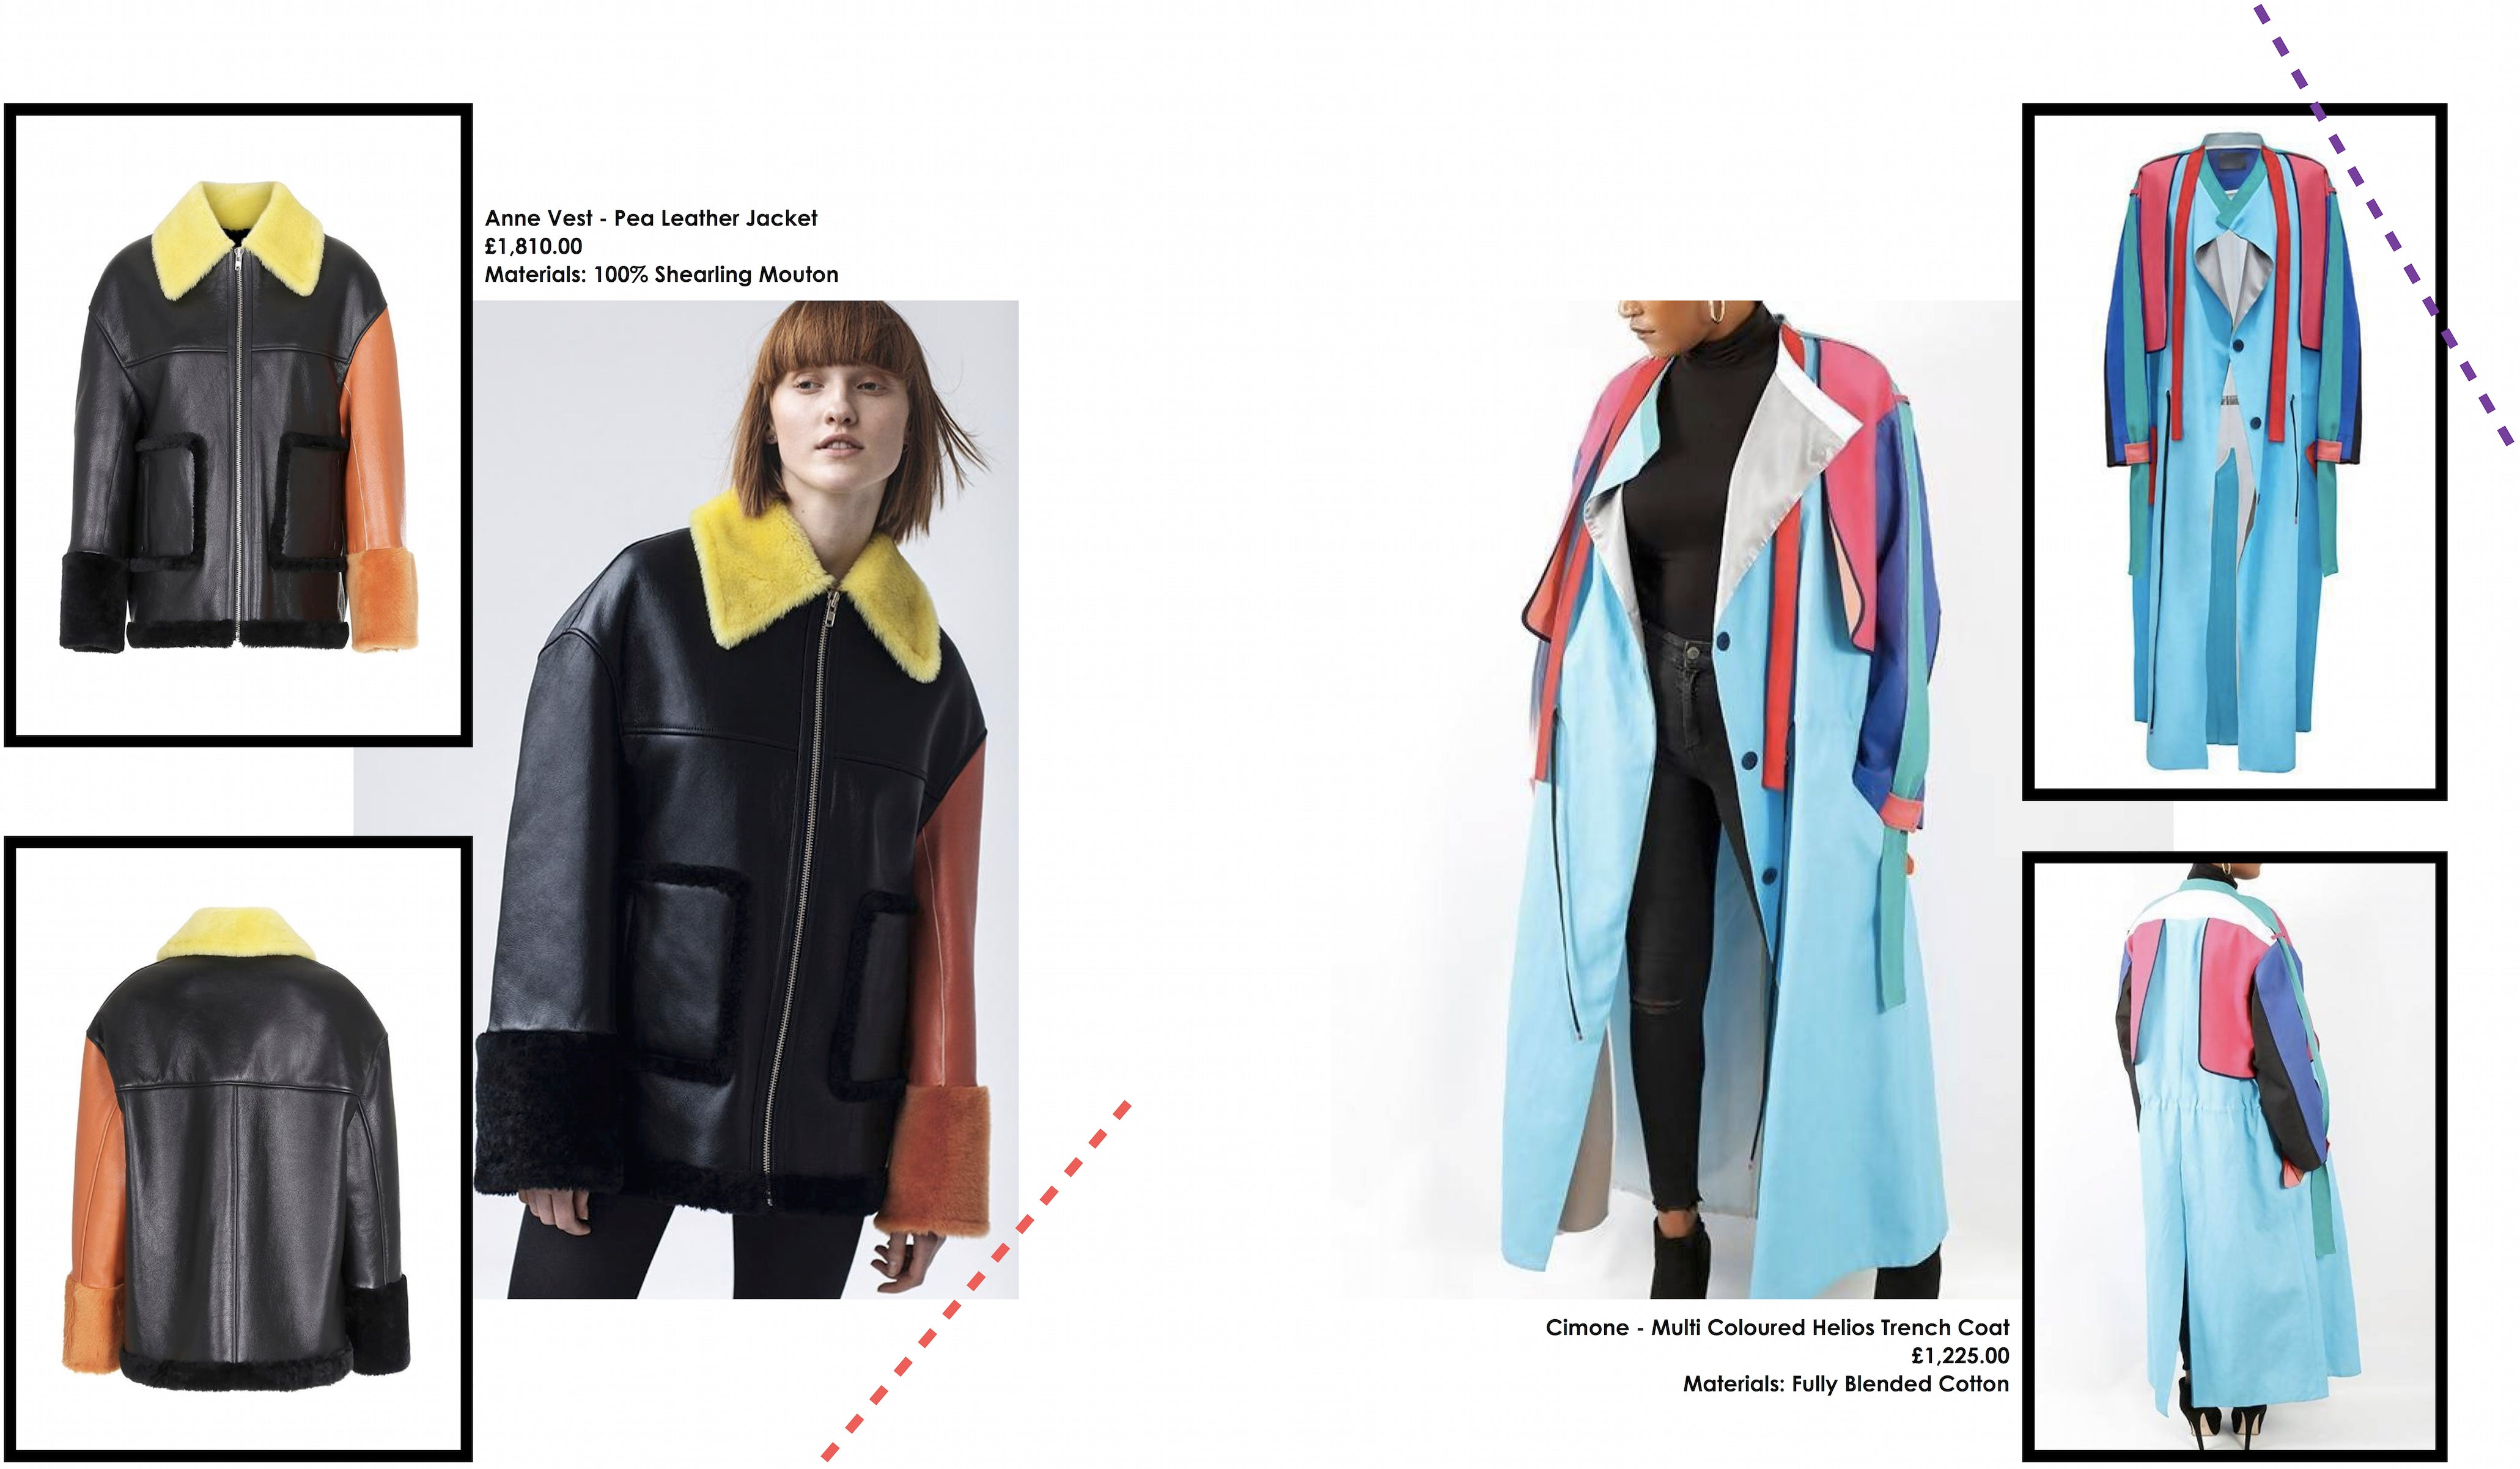 anne vest pea leather jacket and cimone multi coloured helios trench coat